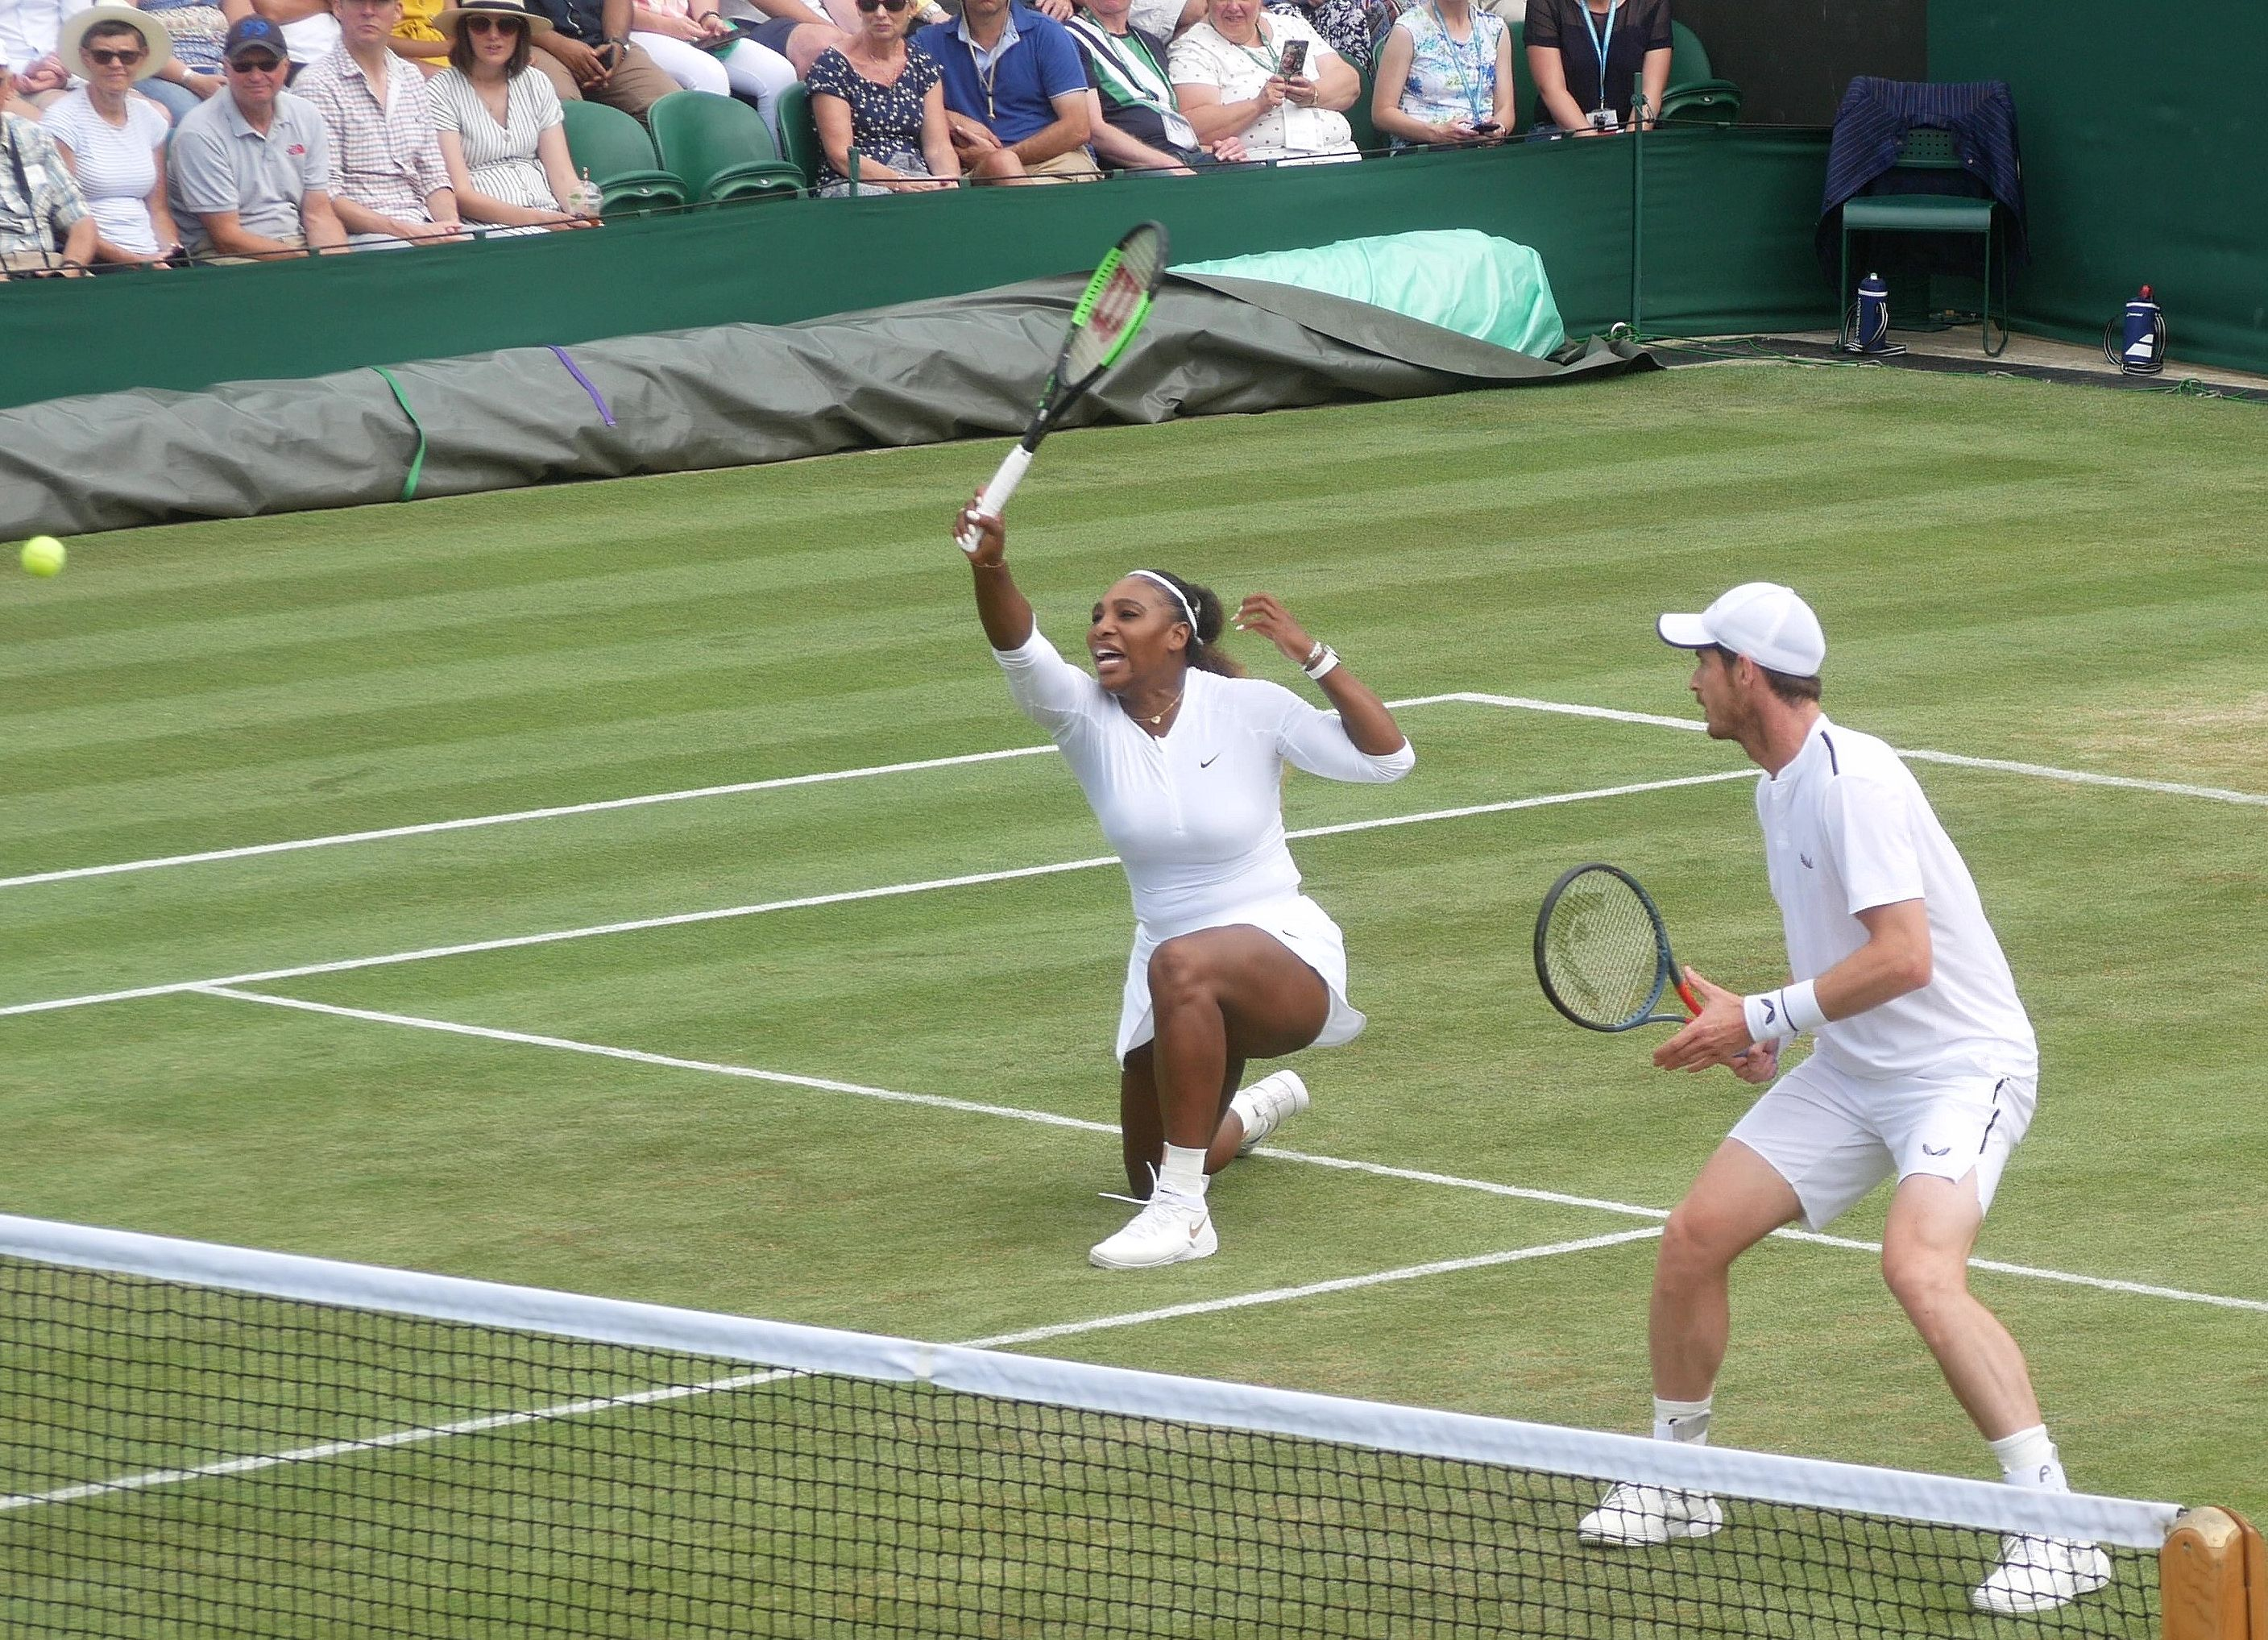 Serena Williams and her partner on the court caught in motion in their white outfits and they look amazing.